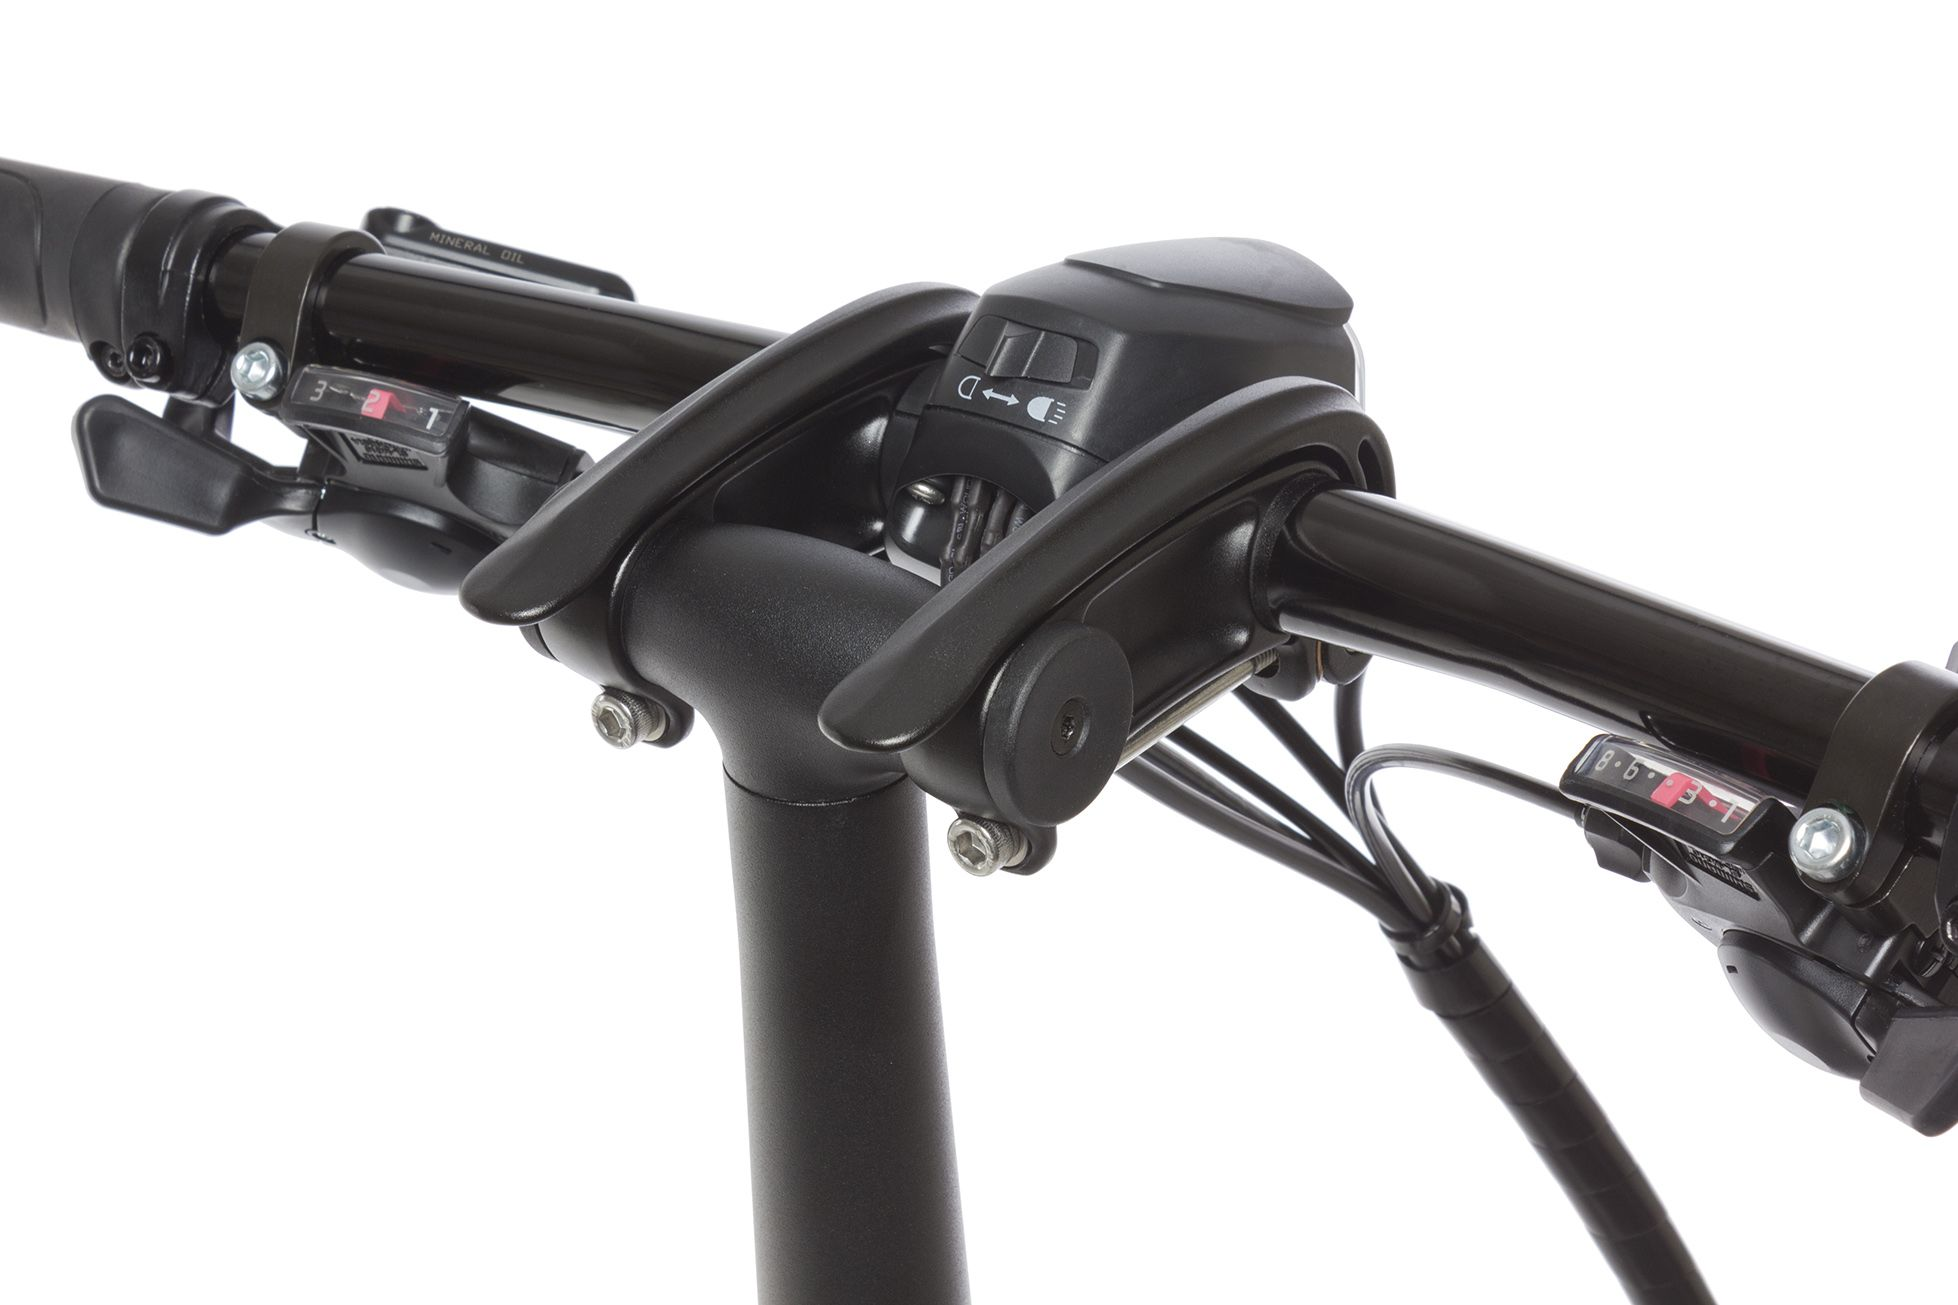 The Tern Andros Handlebar Stem Lets You Adjust The Height And